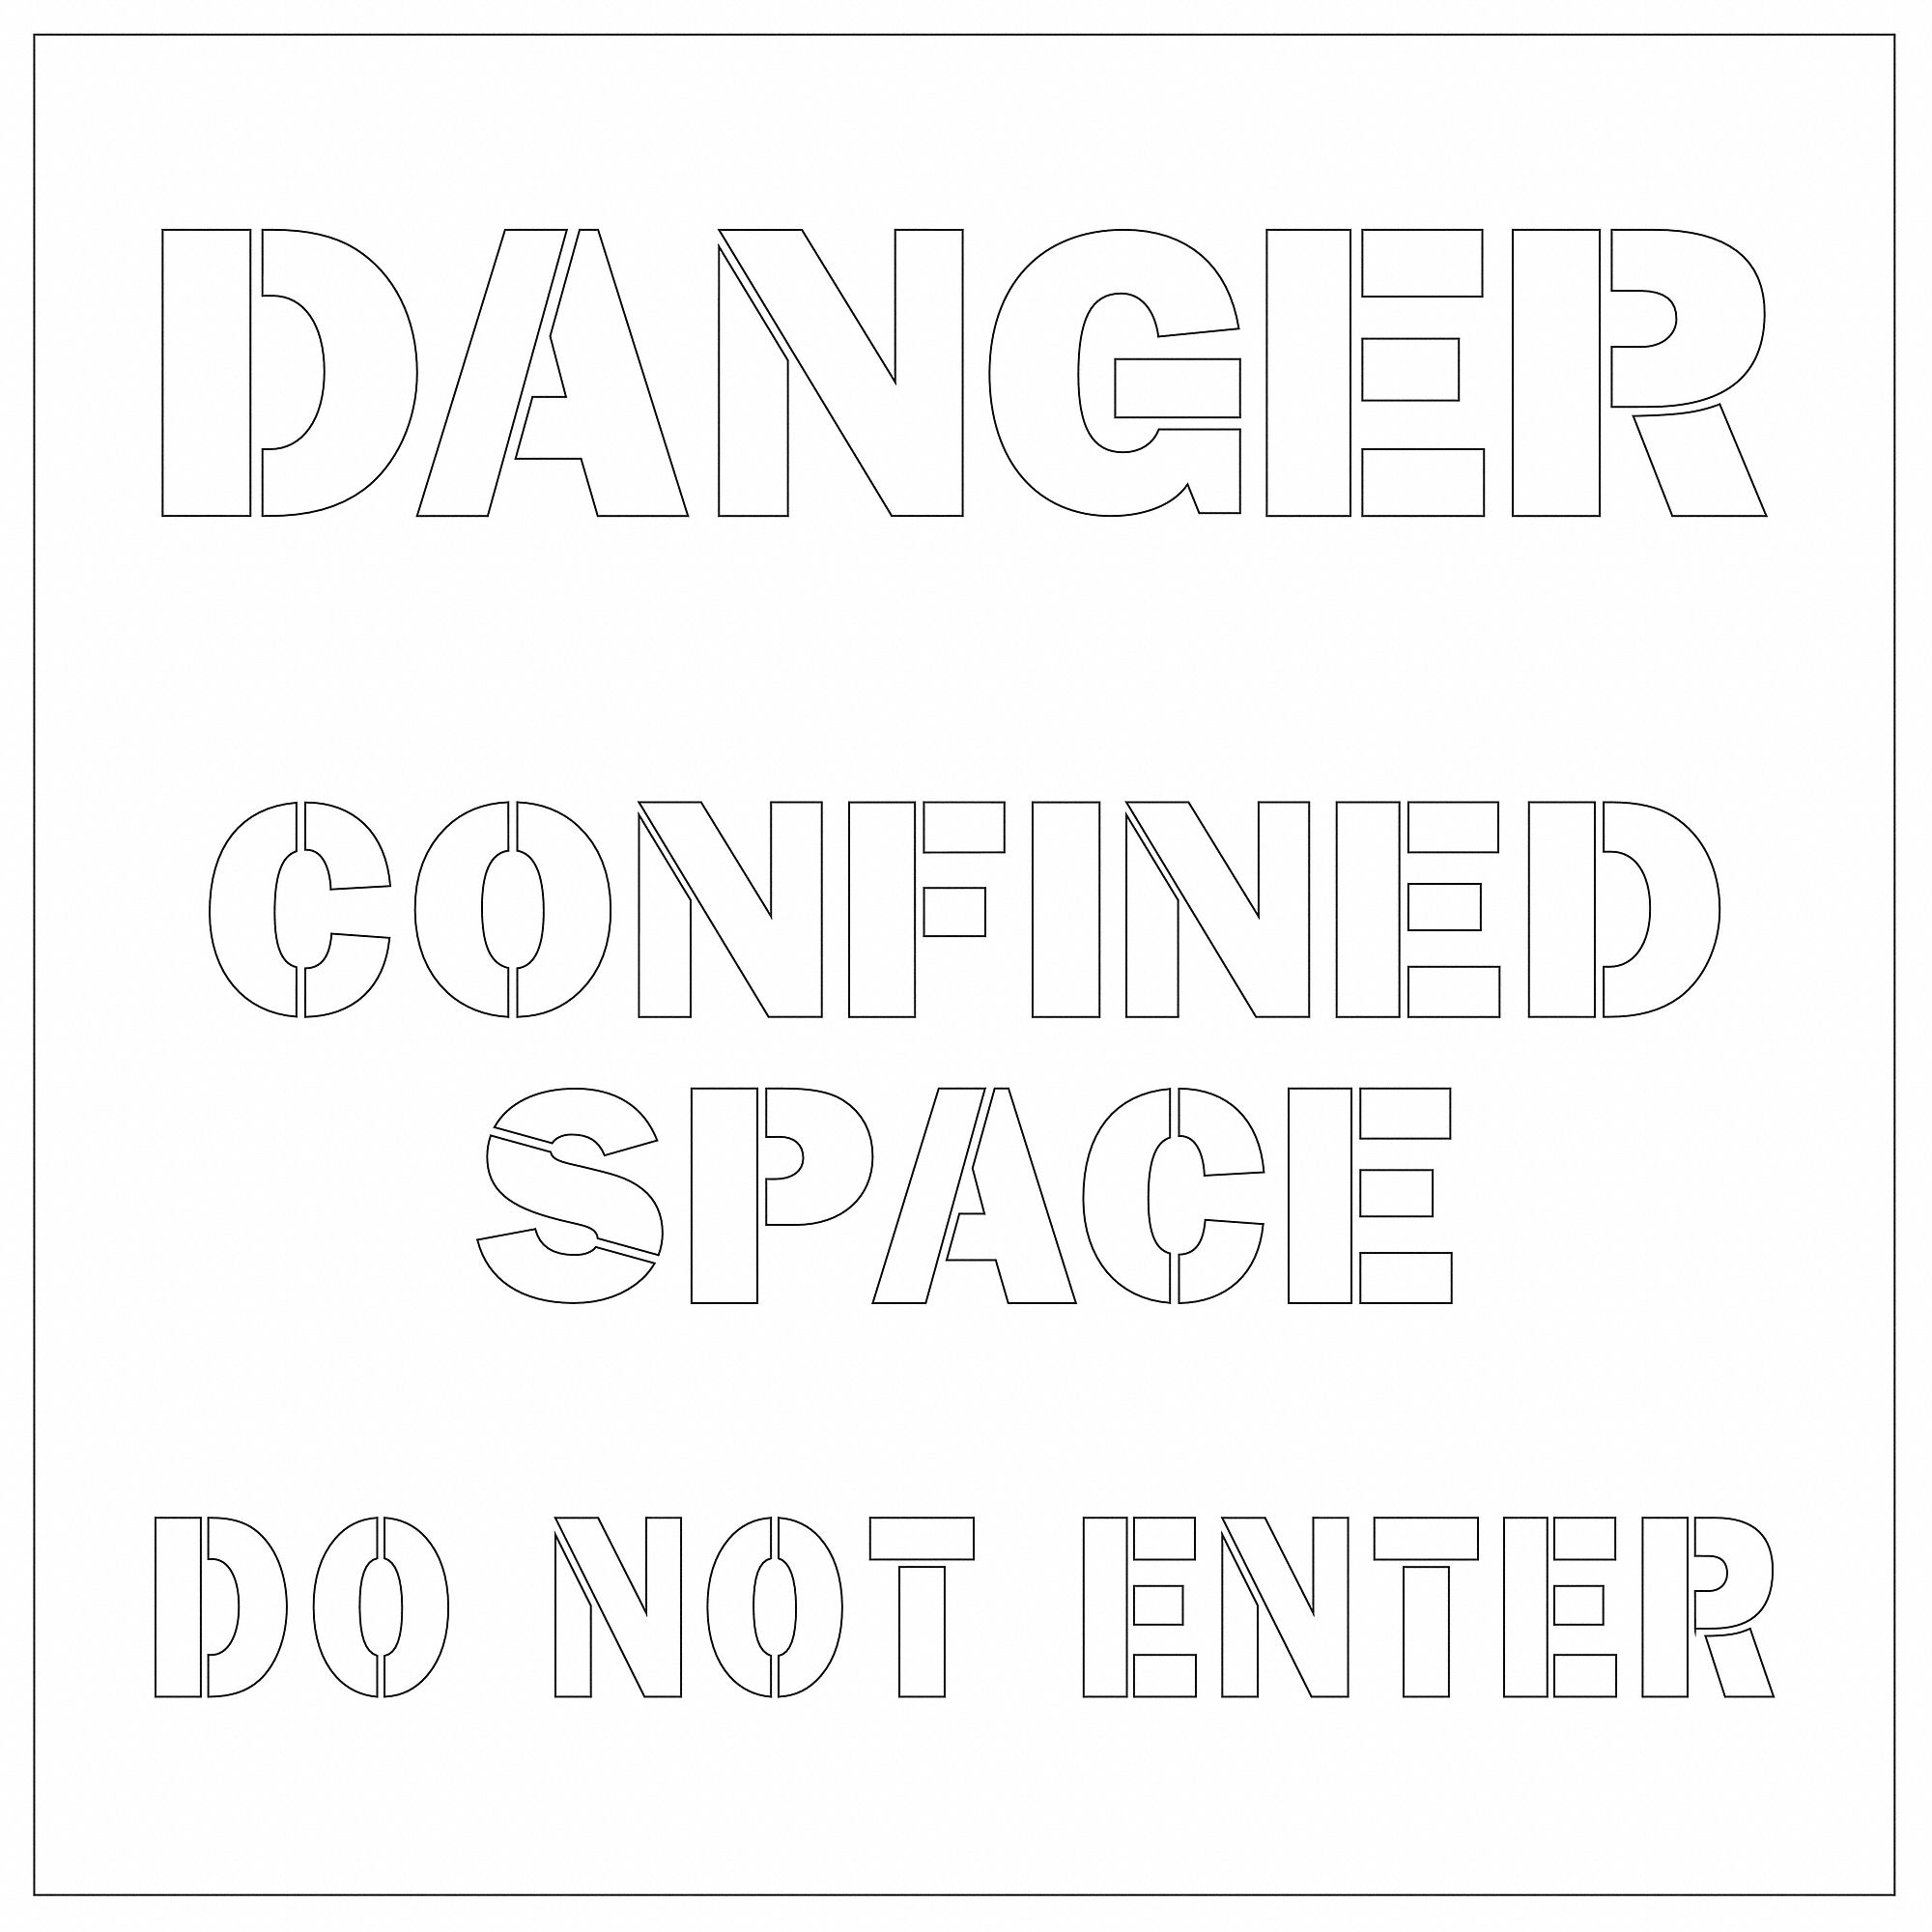 ELECTROMARK Stencil, Danger Confined Space Do Not Enter, 3